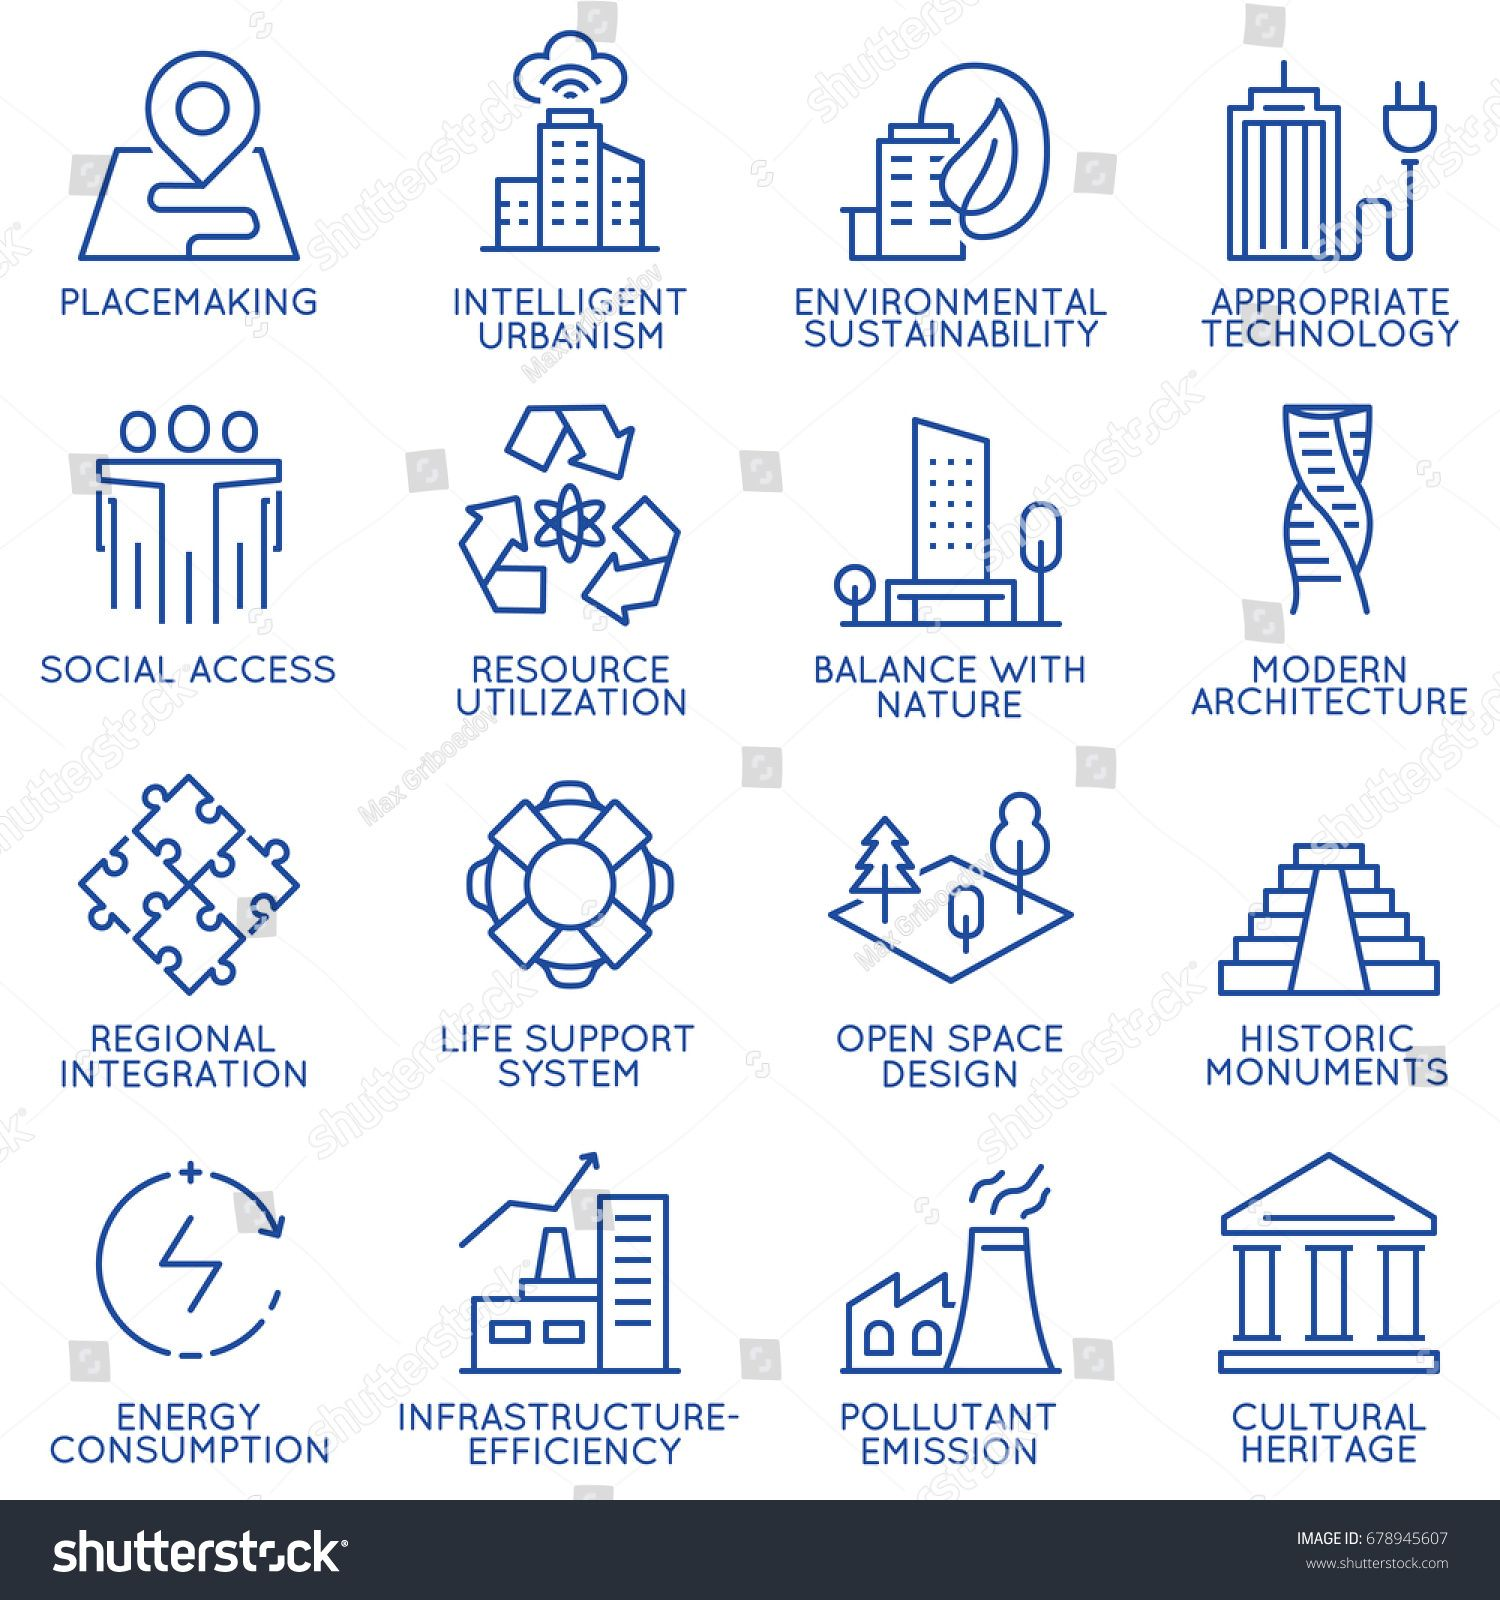 Vector Set Of Thin Linear 16 Icons Related To Technology For Intelligent Urbanism Smart City And Urban Development Mon Smart City City Logos Design City Icon